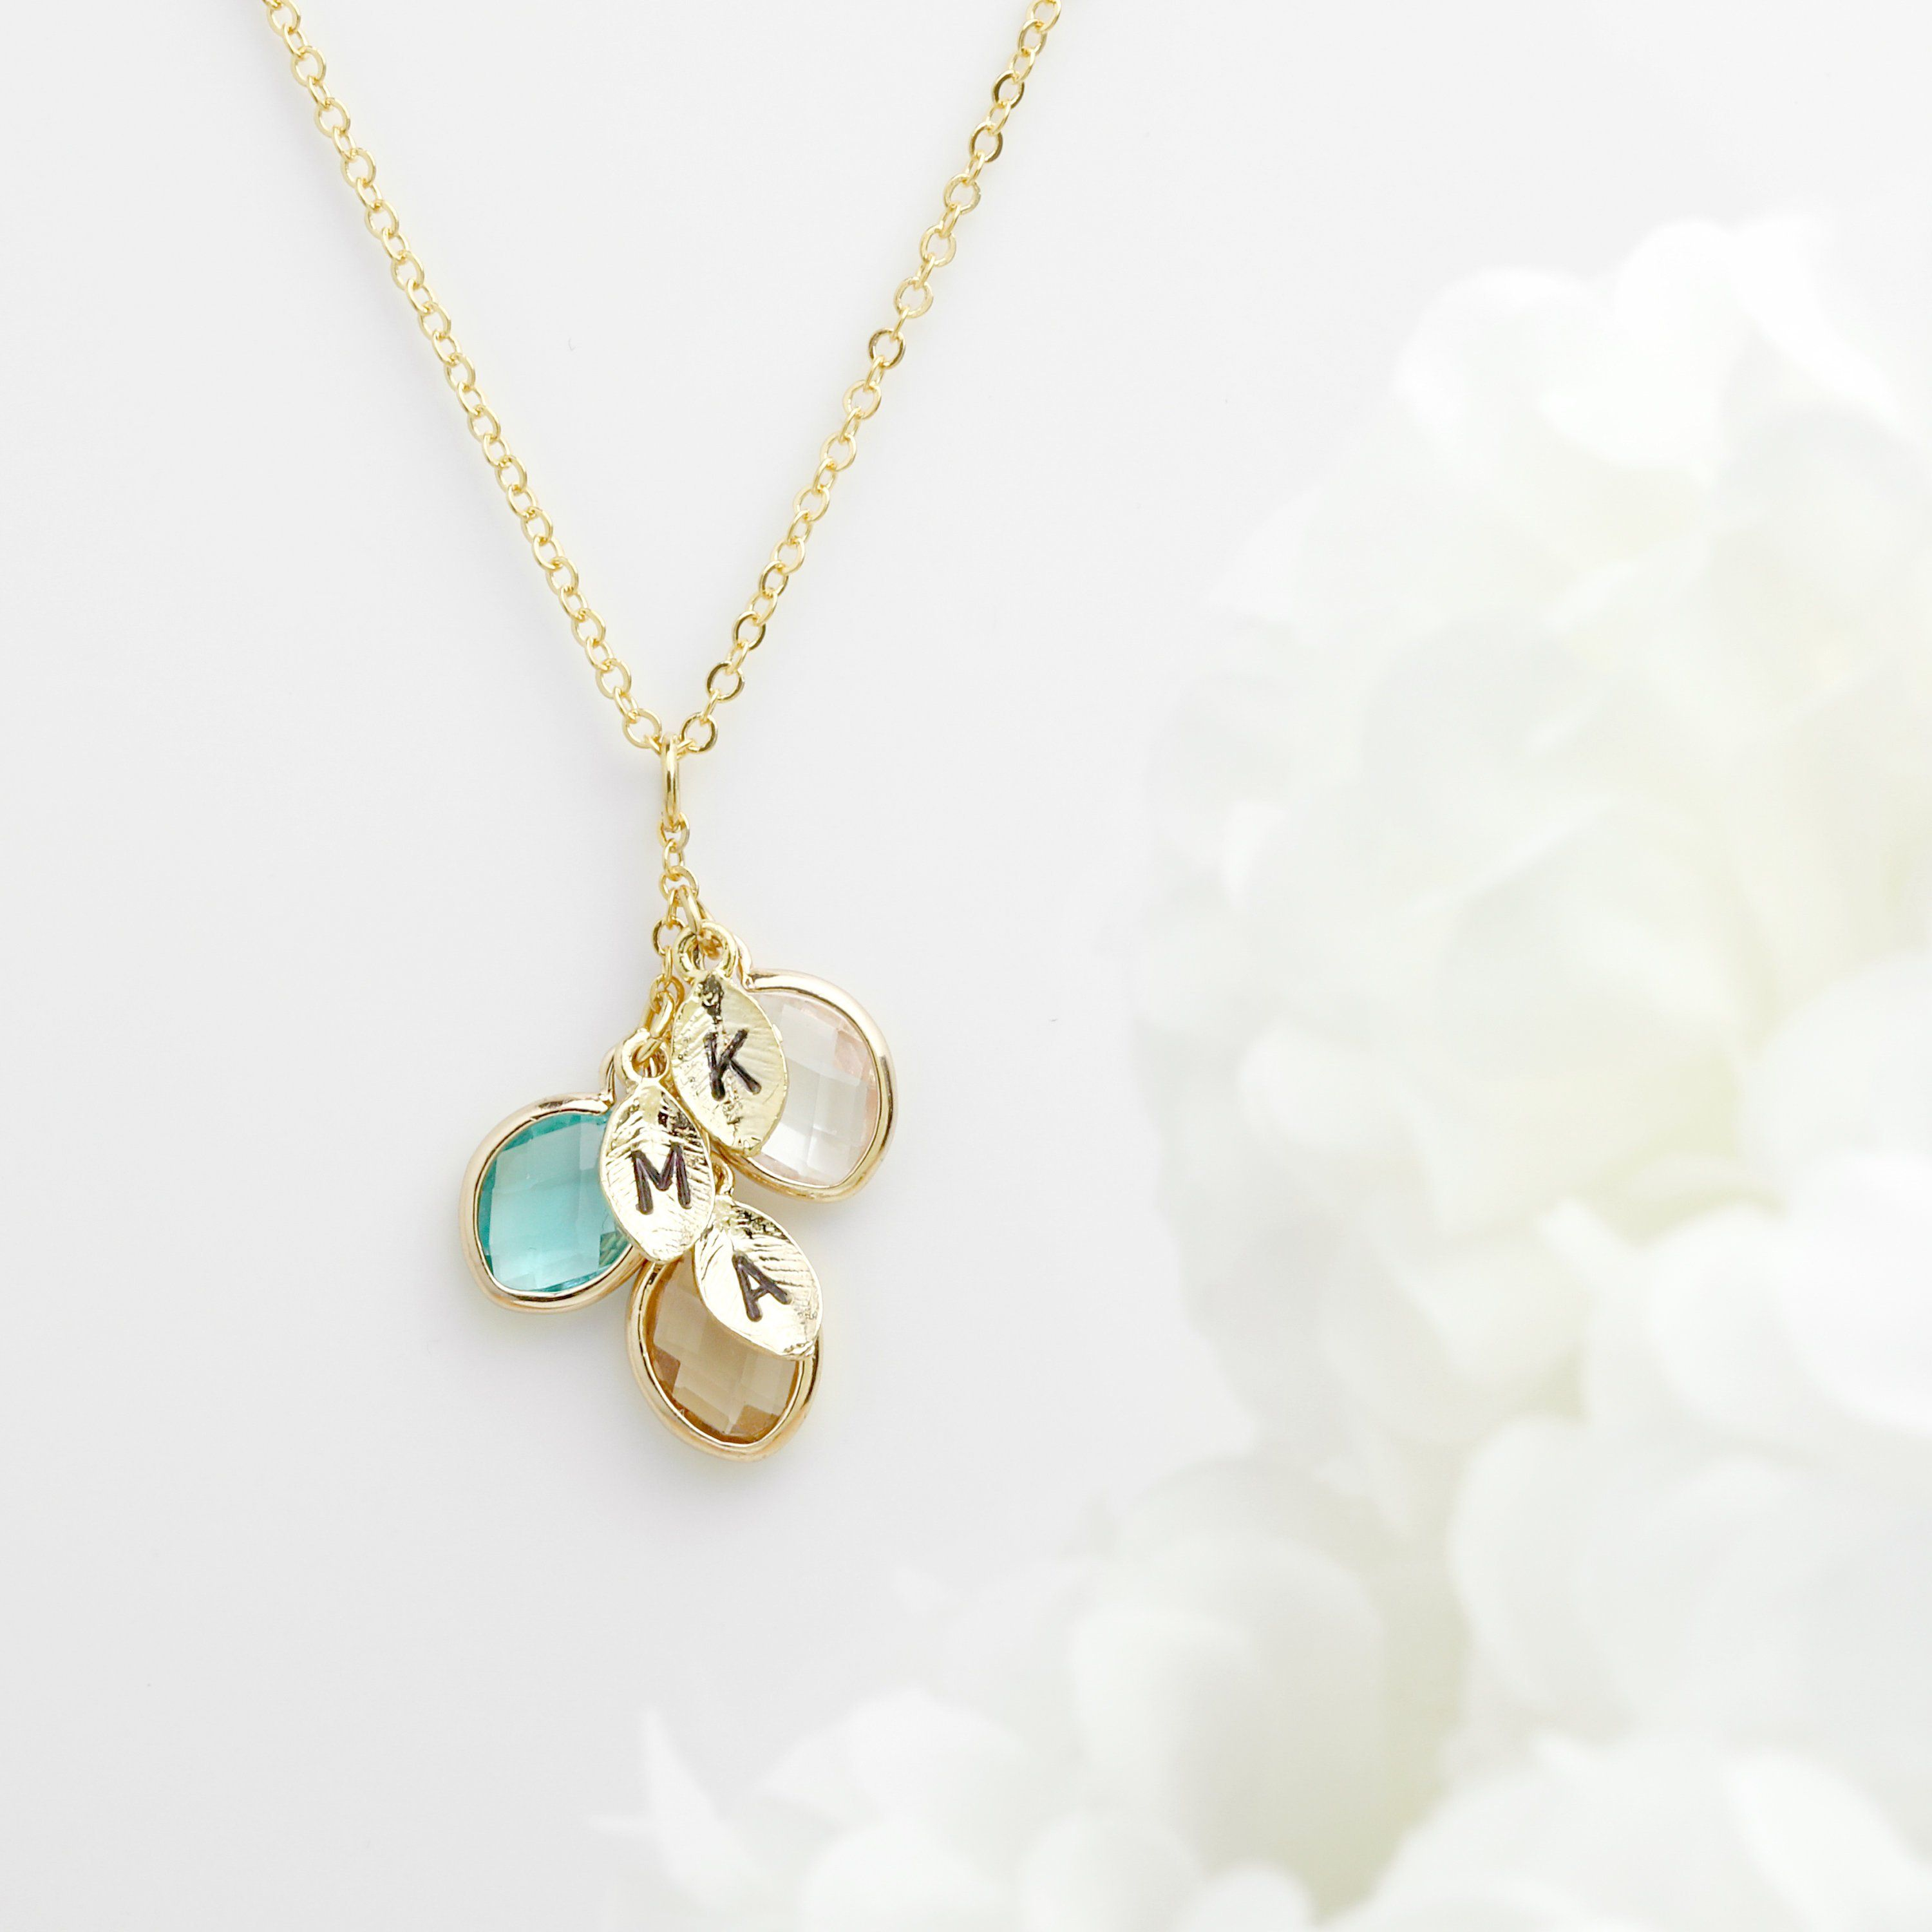 Mother Daughter Necklace Set Mom And Baby Necklace New Mom Necklace Mother And Child Necklace Birthday Presents For Mom Gifts For Mom Best Gifts For Mom